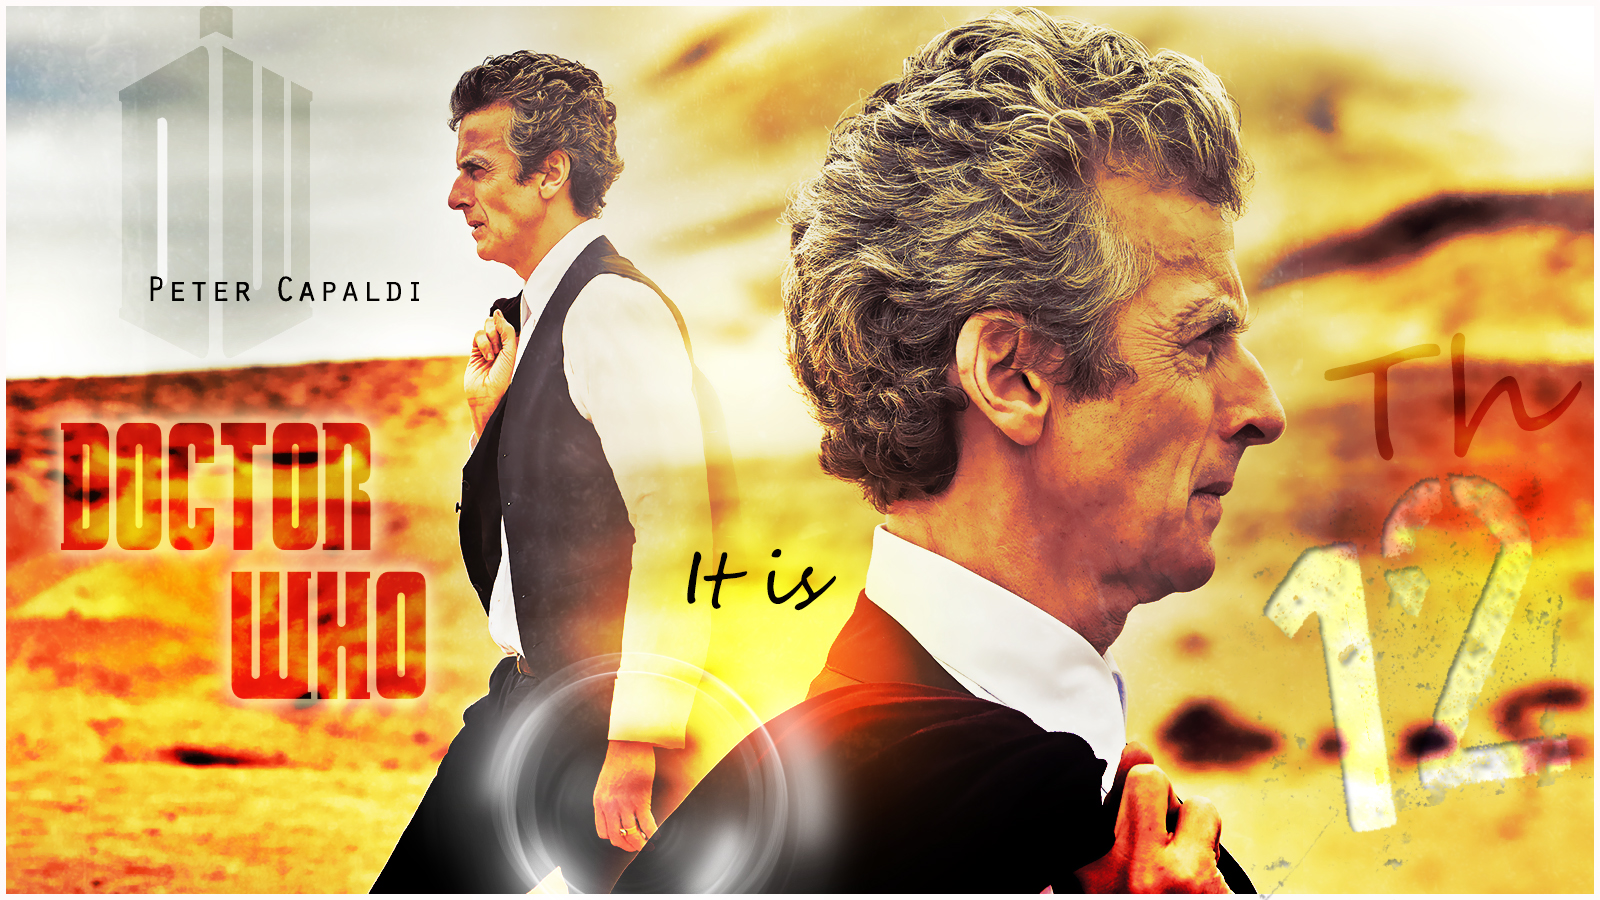 DOCTOR WHO 12TH PETER CAPALDI By Anthony258 On DeviantArt